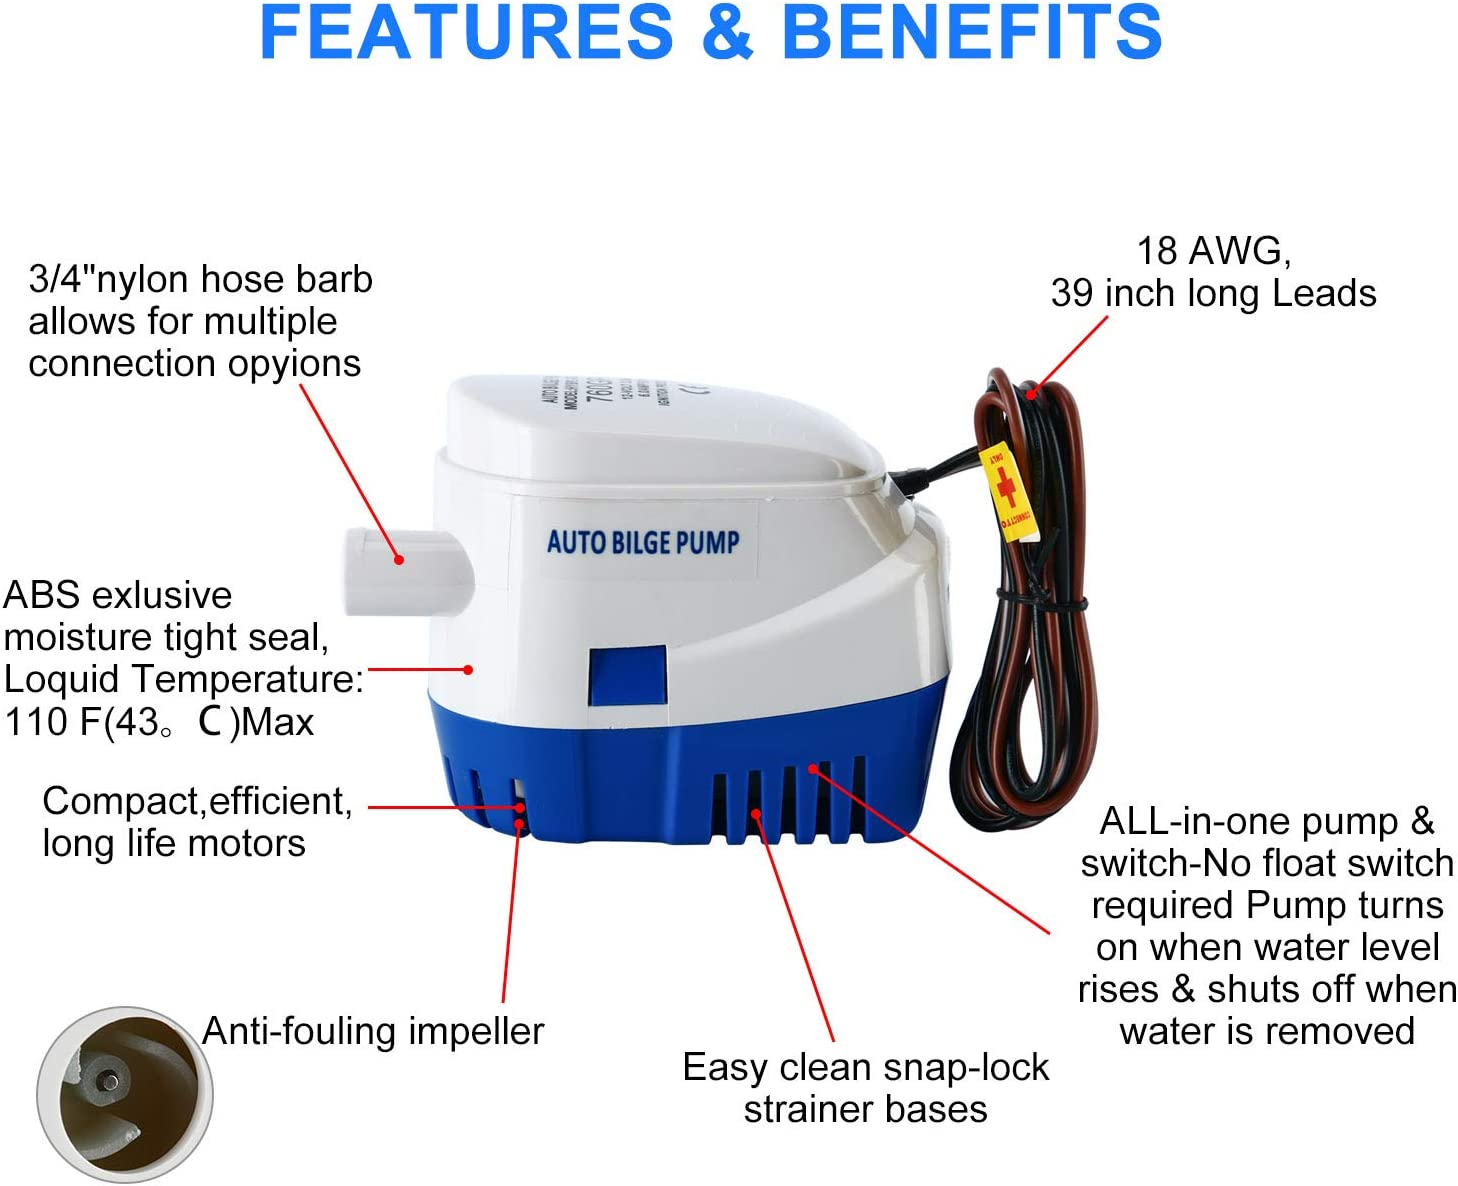 no separate float switch needed Kimddt 12V 750 GPH Automatic Bilge Water Pump Fully Automatic Submersible Electric Pump 3A with built in float switch system